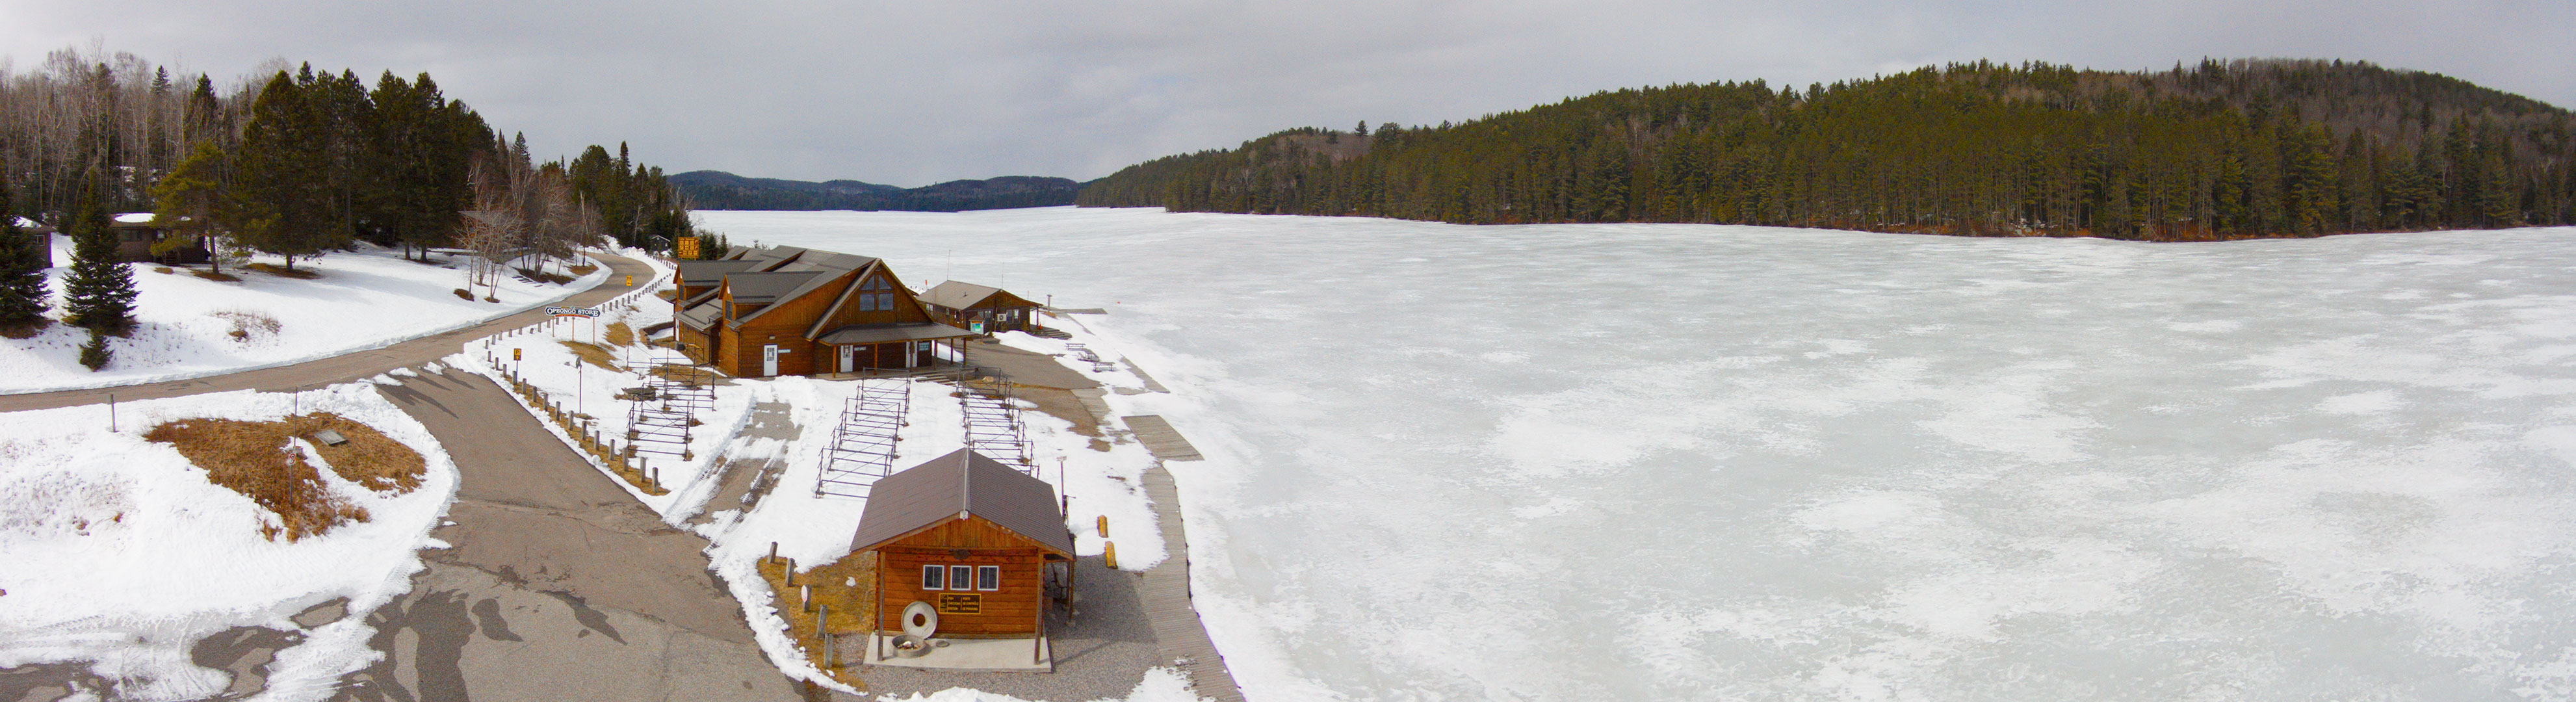 Lake Opeongo Spring Ice observations on March 21st 2016